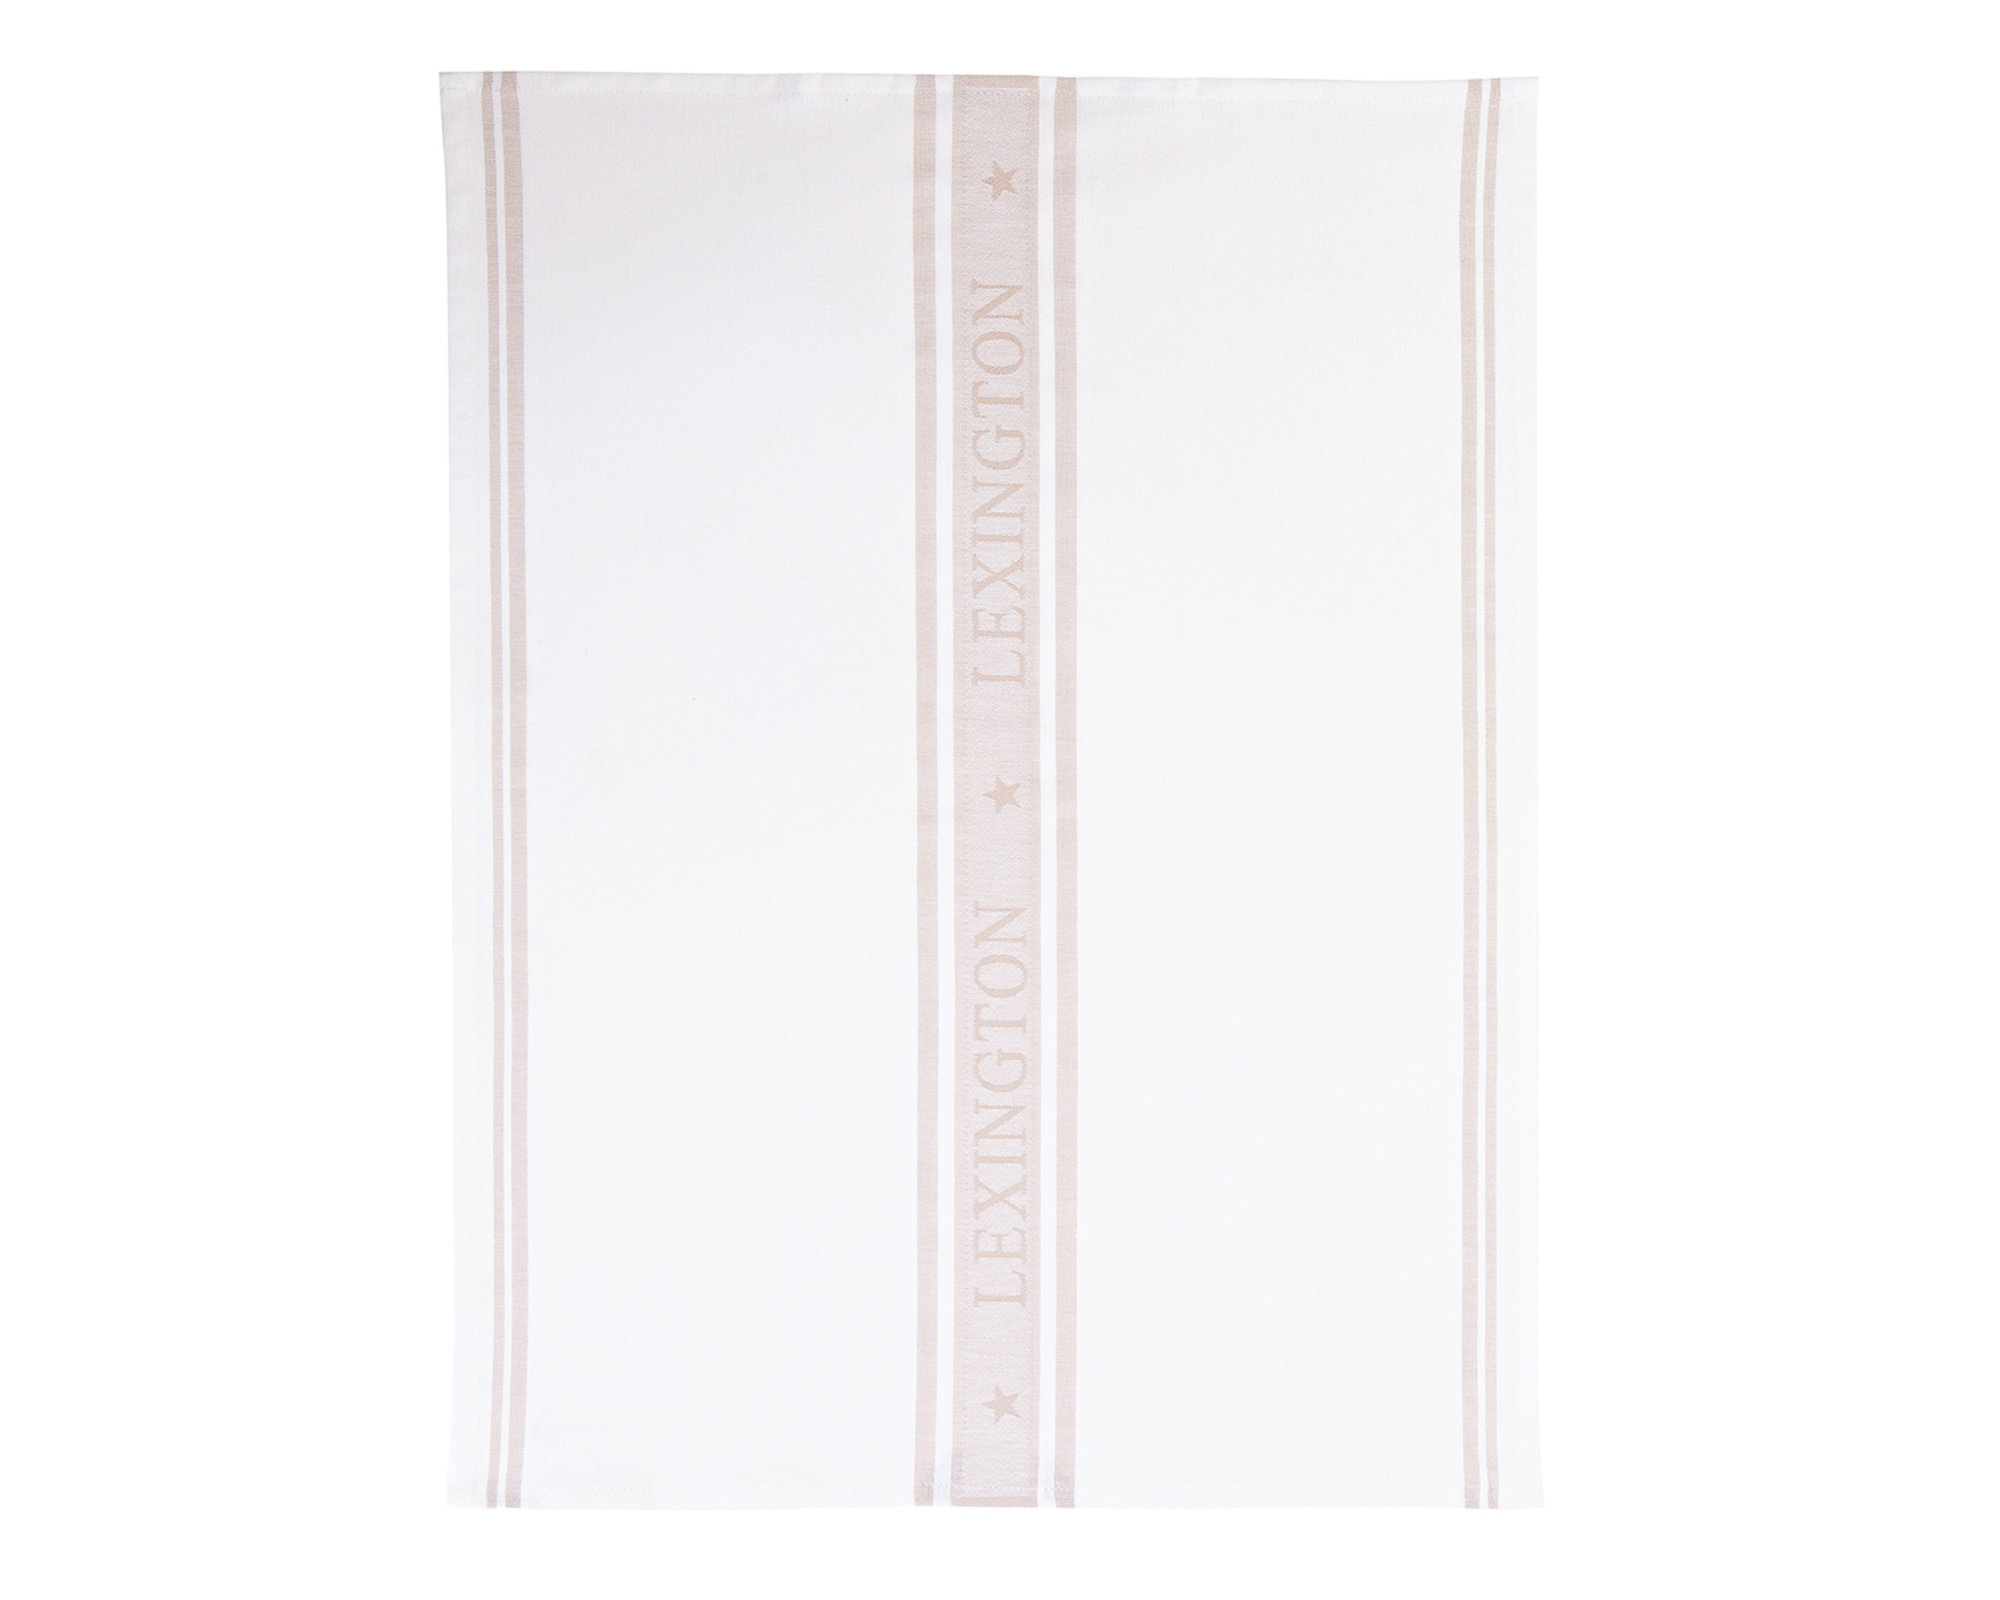 Star Kitchen Towel, White/Beige